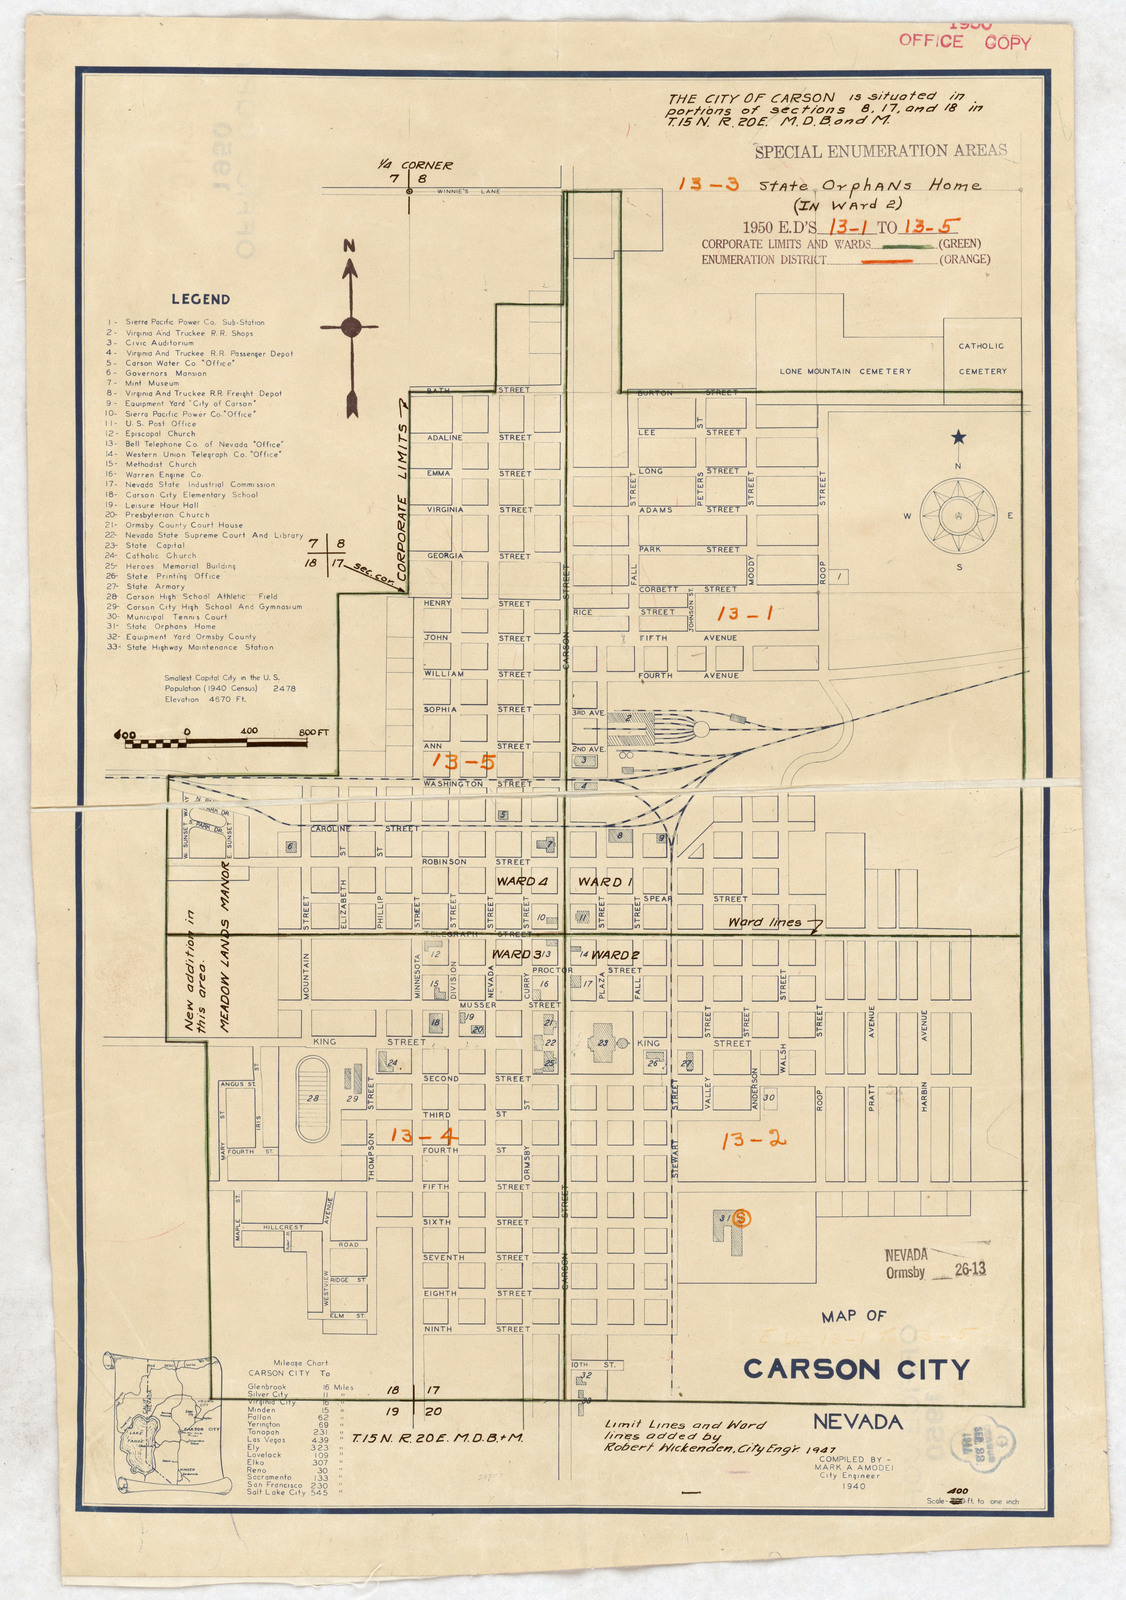 1950 Census Enumeration District Maps - Nevada (NV) - Ormsby County ...